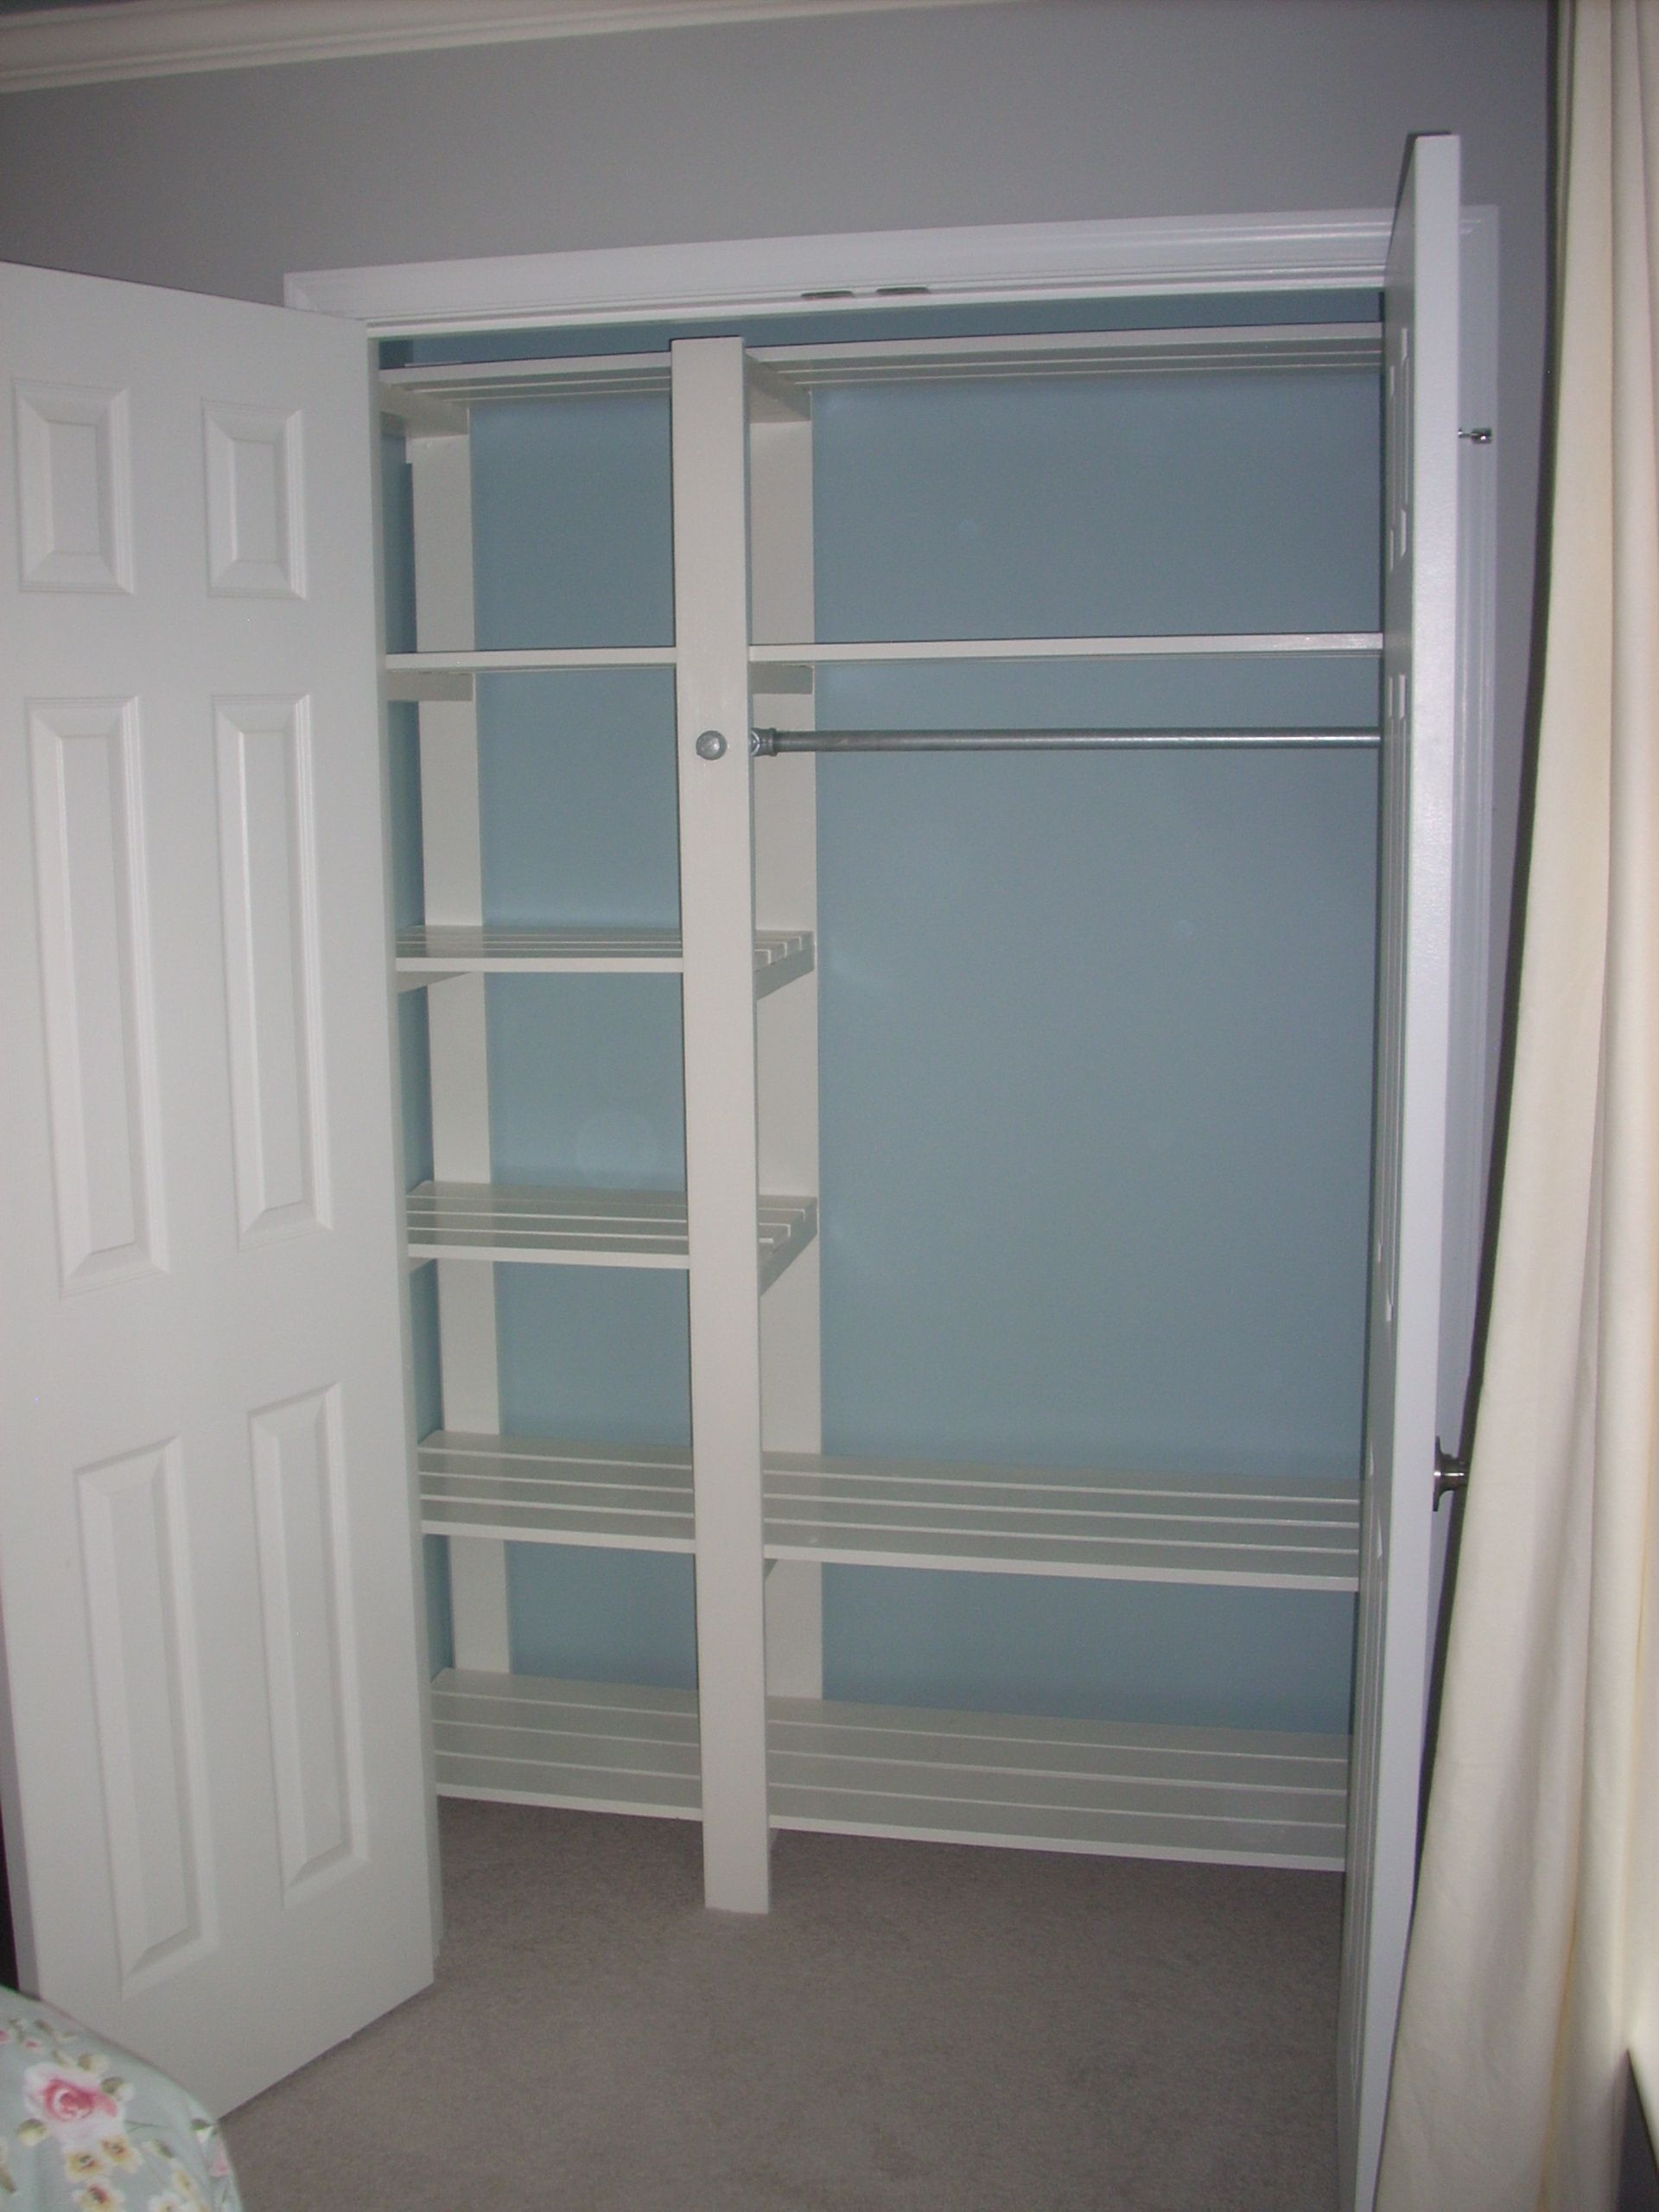 Guest Bedroom Closet Do It Yourself Home Projects from